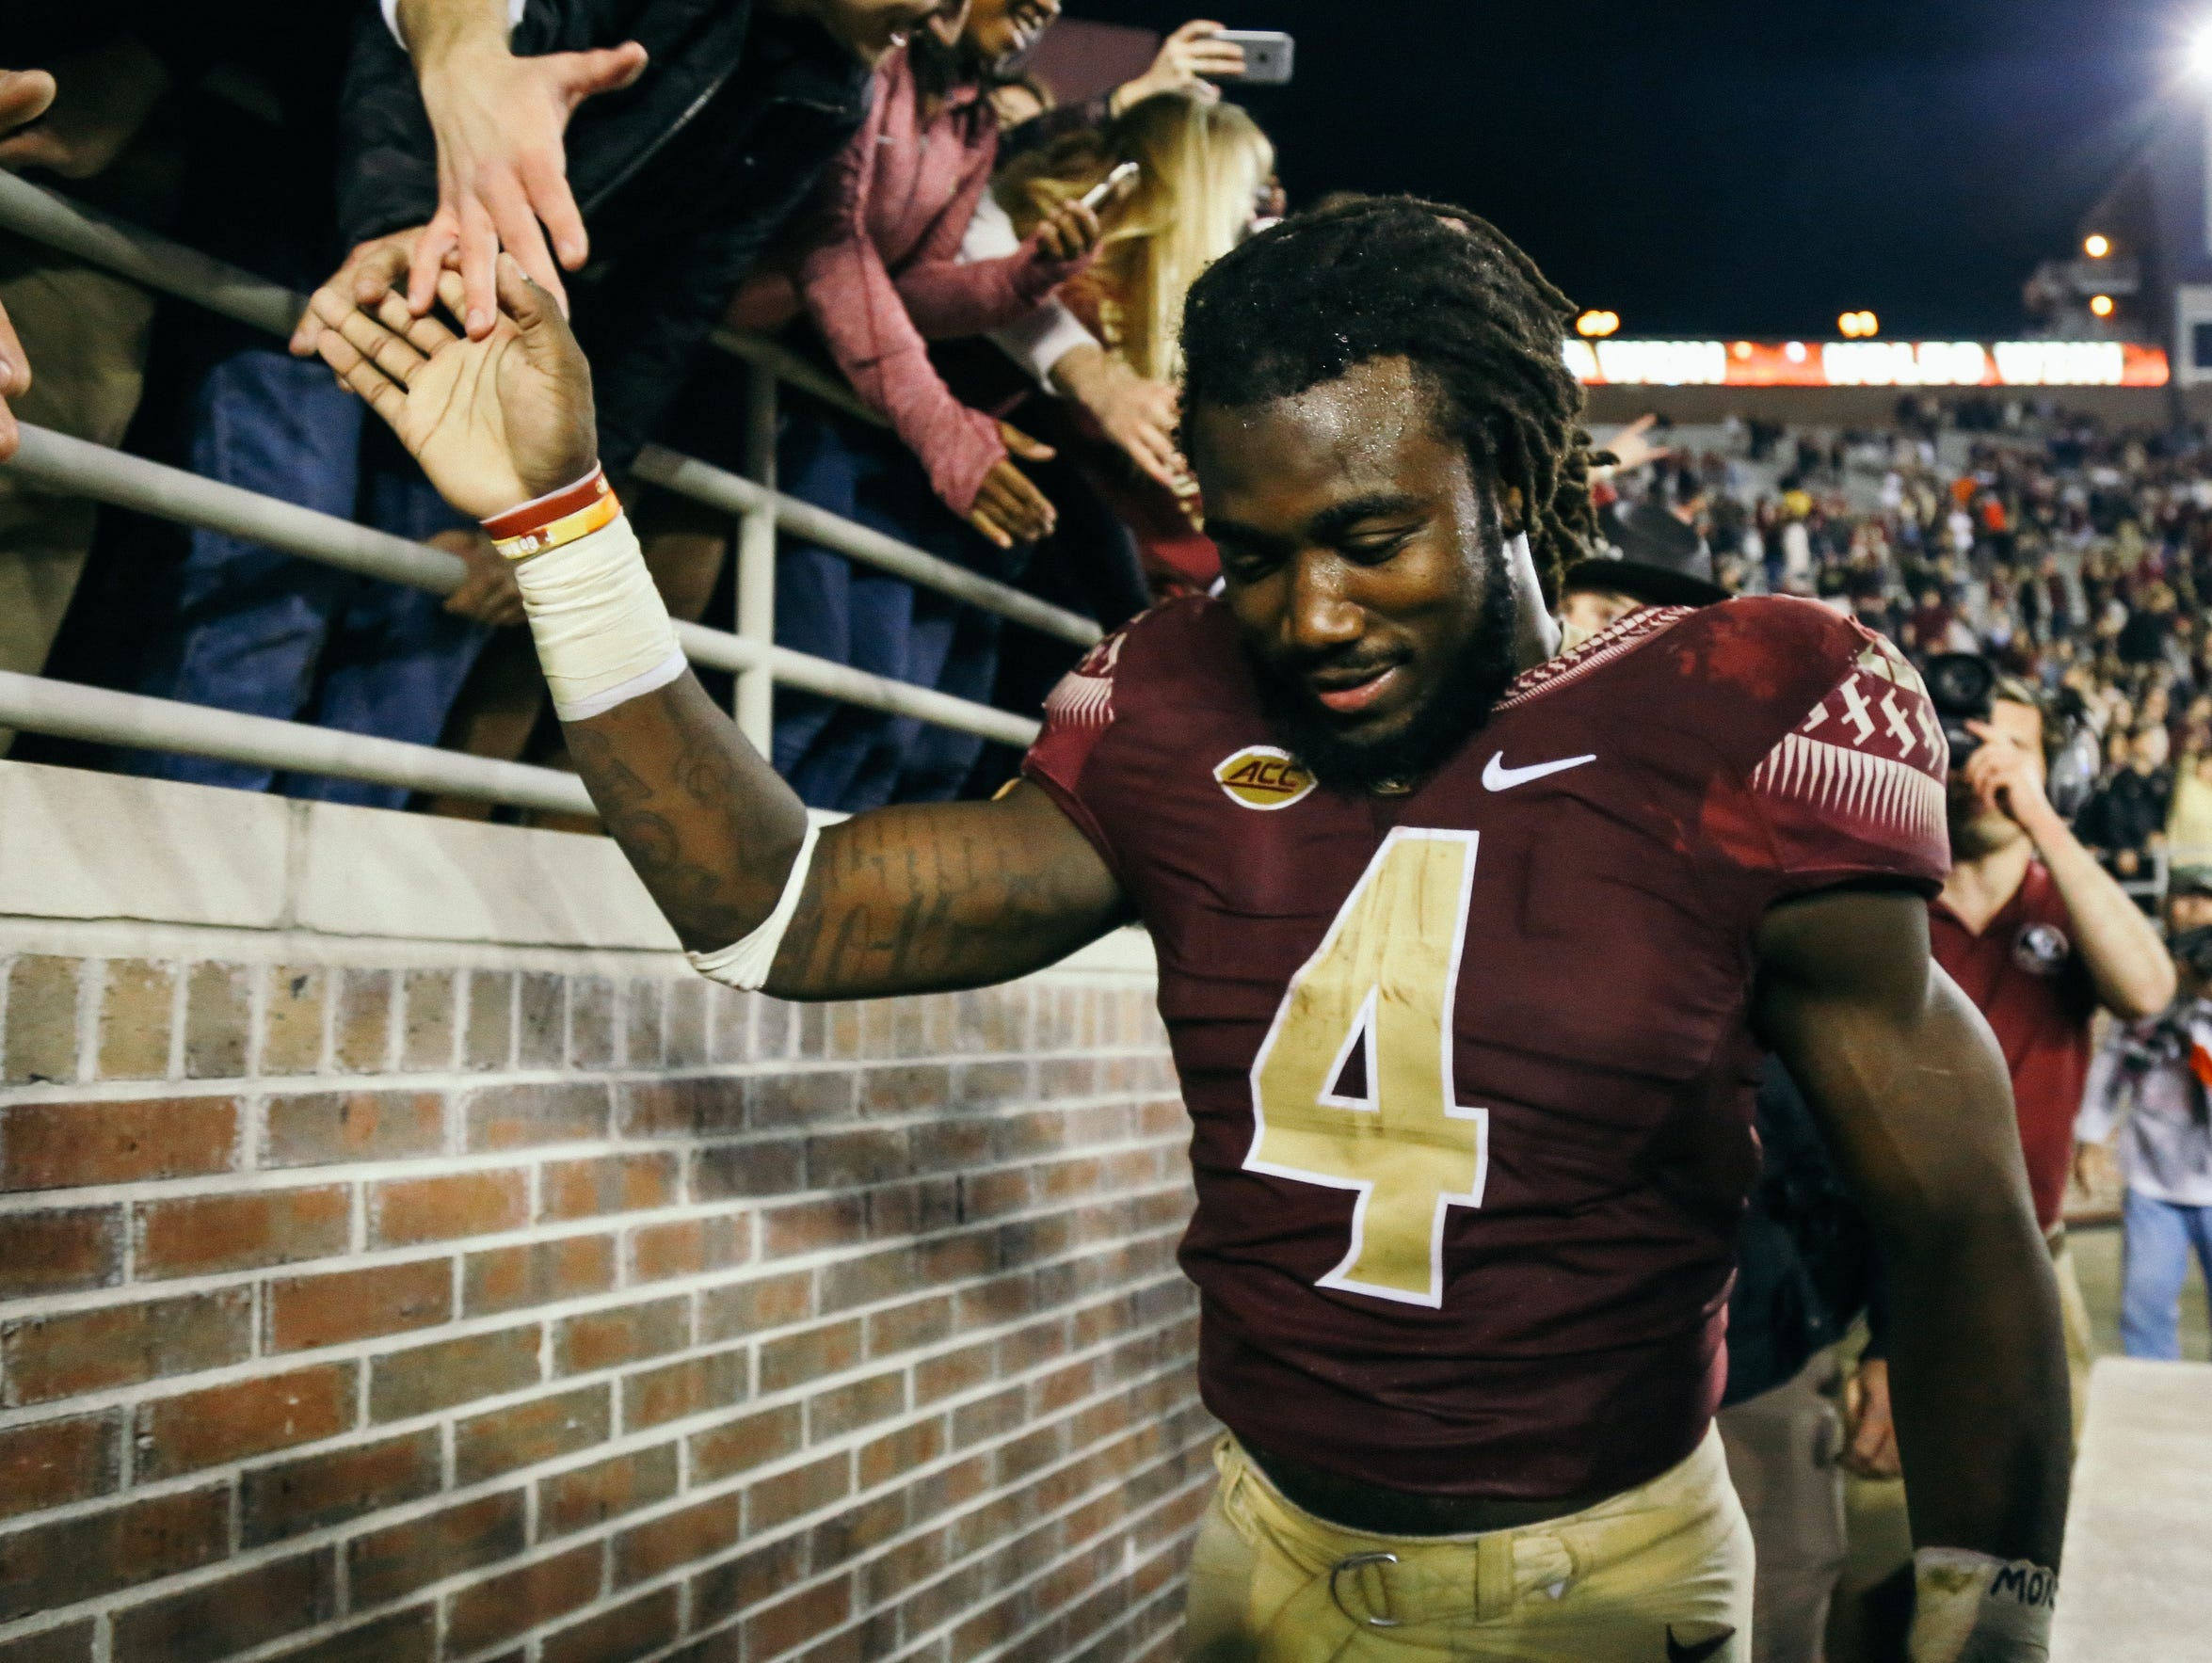 Dalvin Cook (4) celebrates with fans after beating